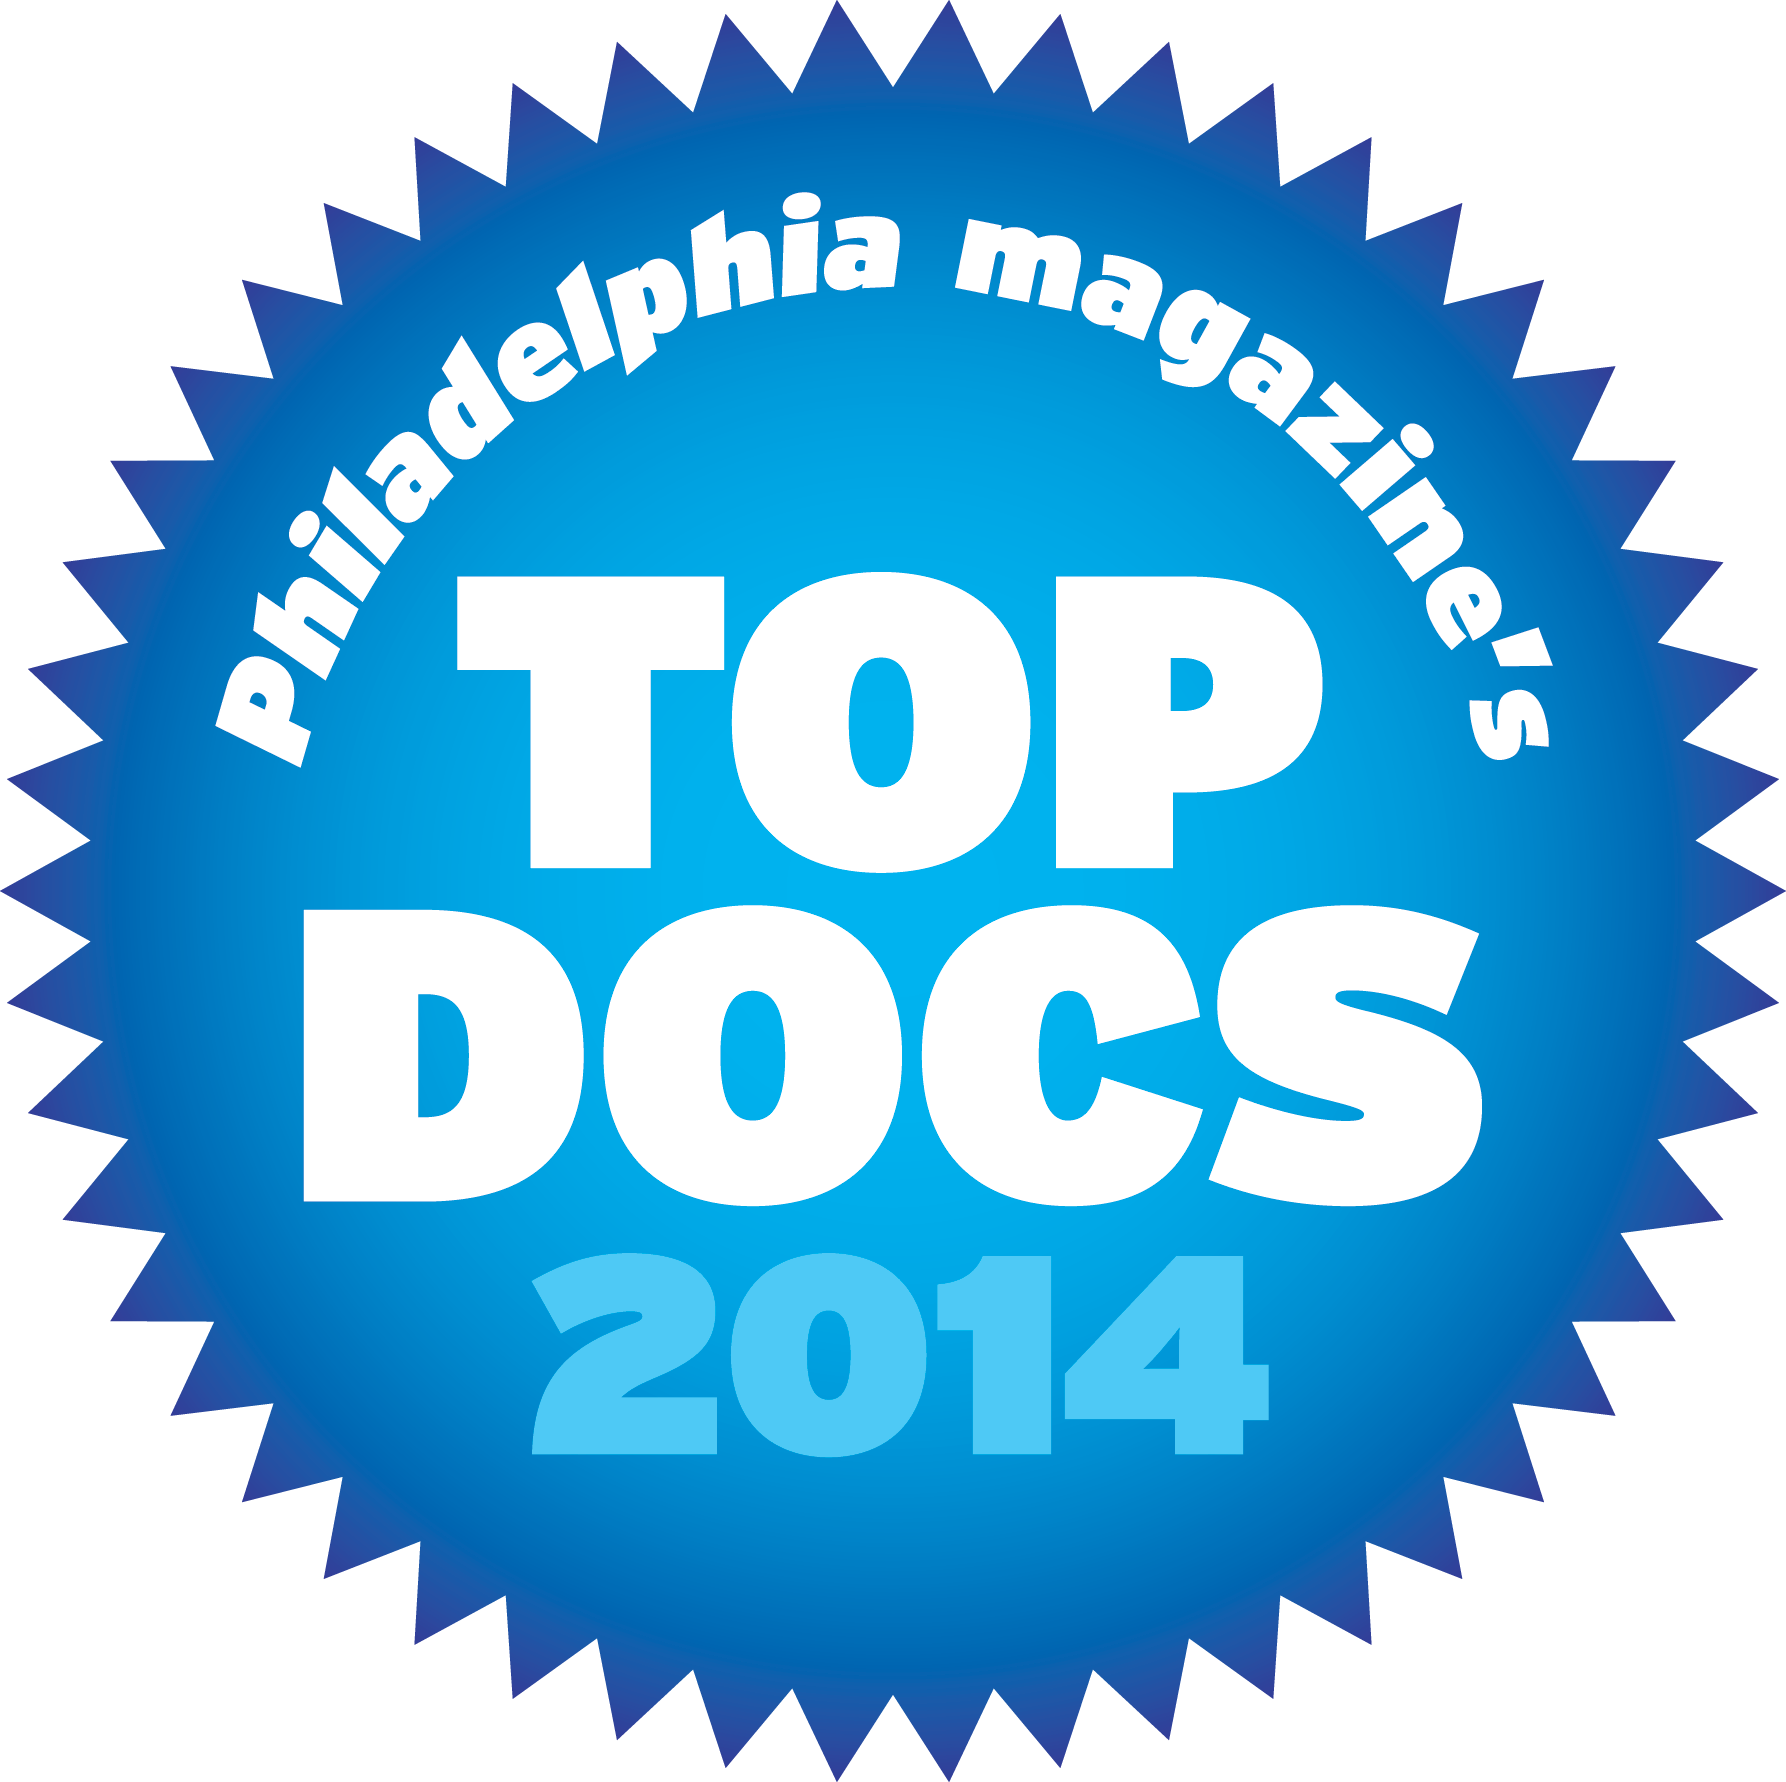 Guidelines for philadelphia magazines top docstm trademark use the philadelphia magazine top docstm trademark must not be used in connection with a group of professionals or a company name without clearly identifying buycottarizona Images